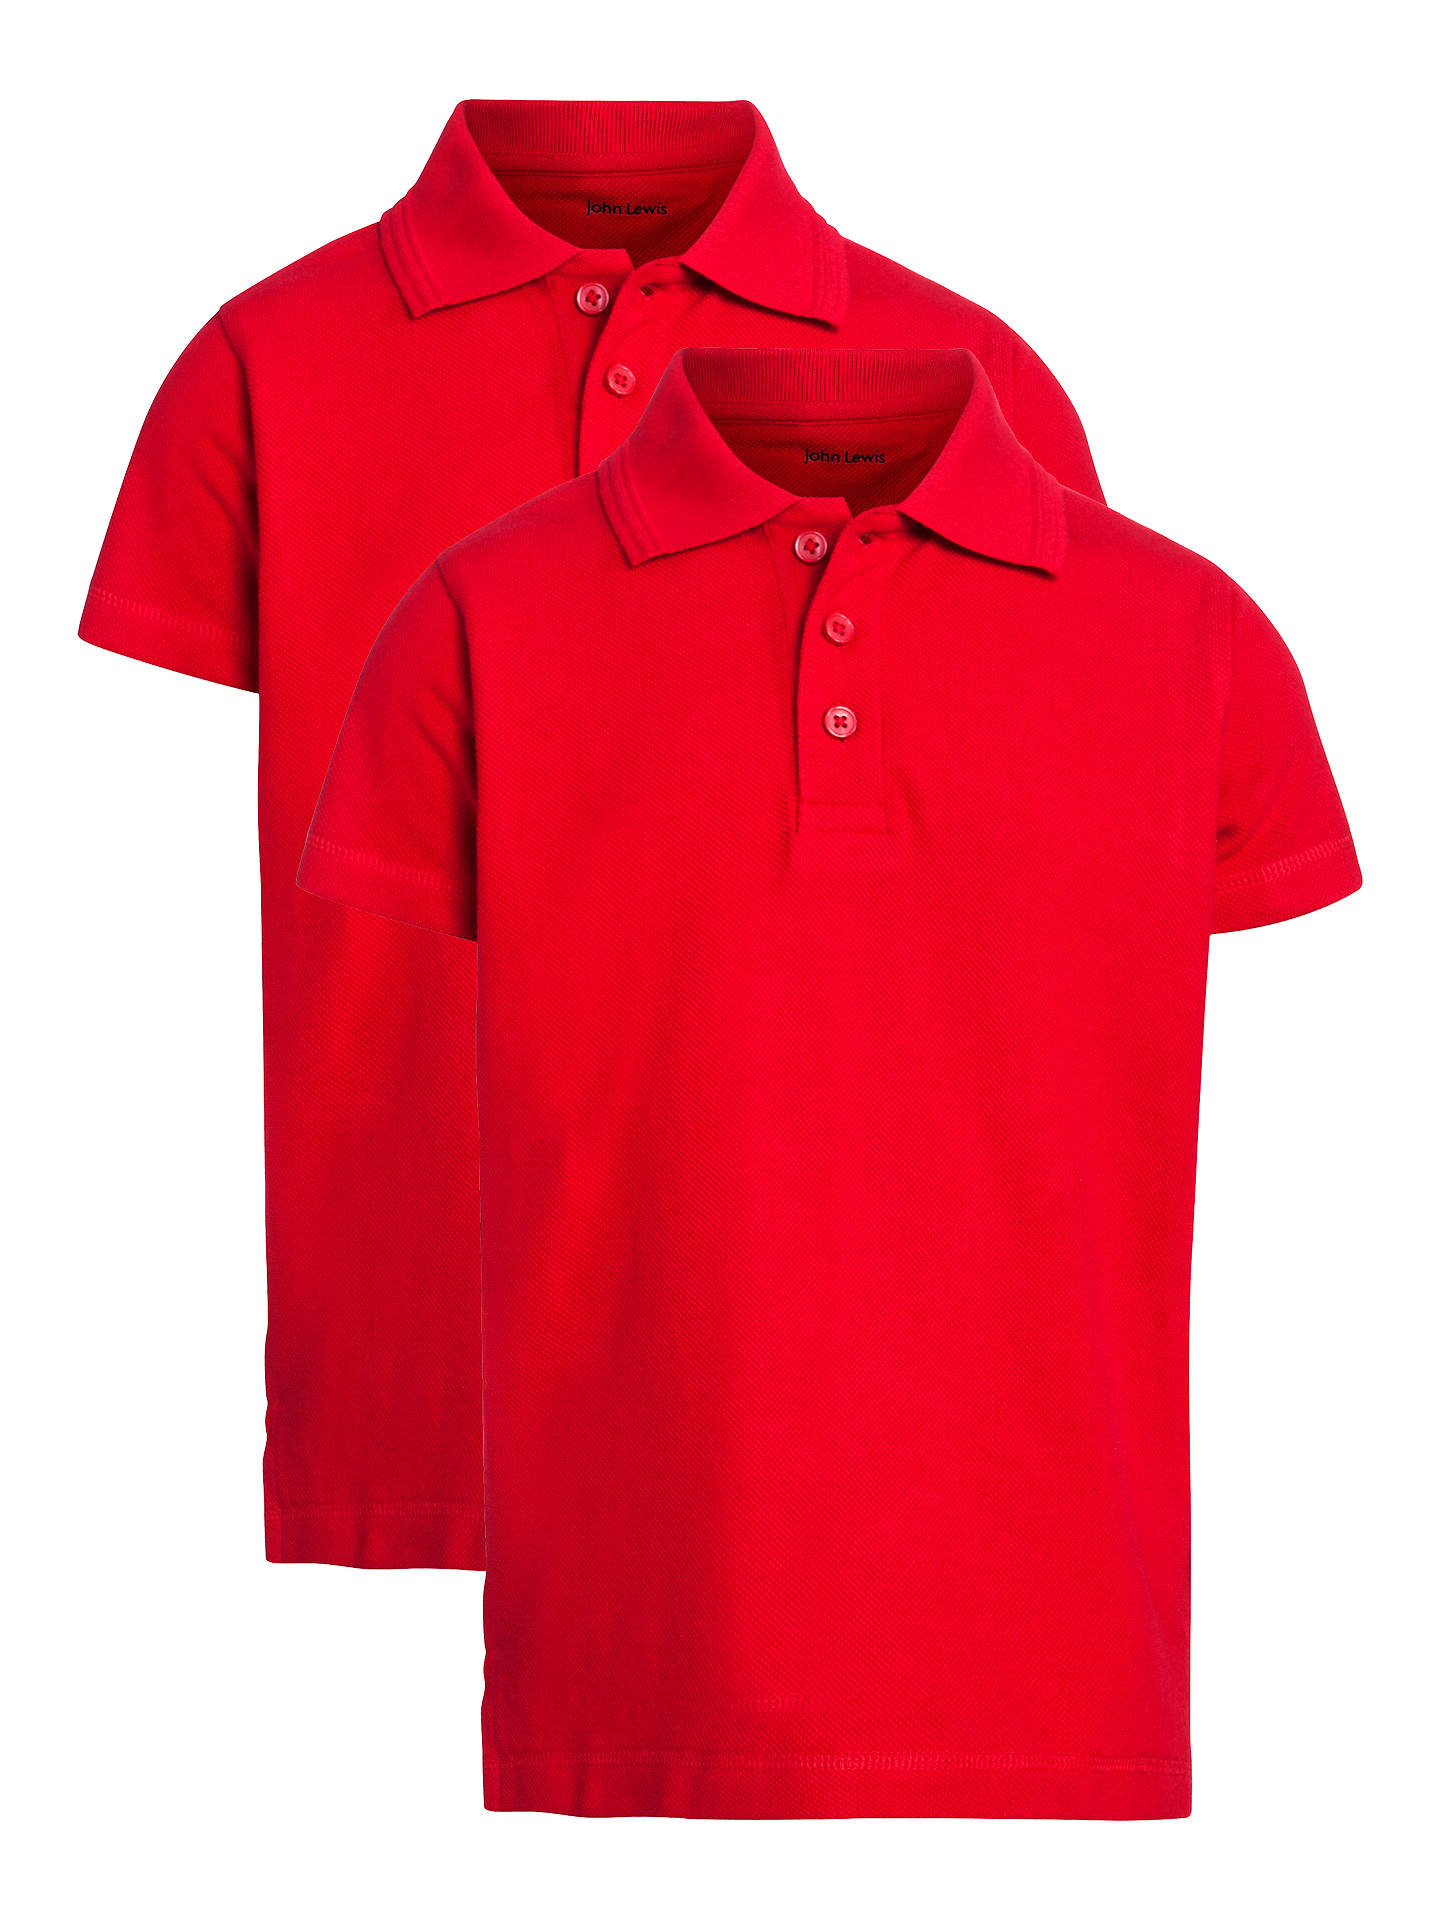 e5c5d634 John Lewis Unisex Polo Shirt, Pack of 2, Red at John Lewis & Partners